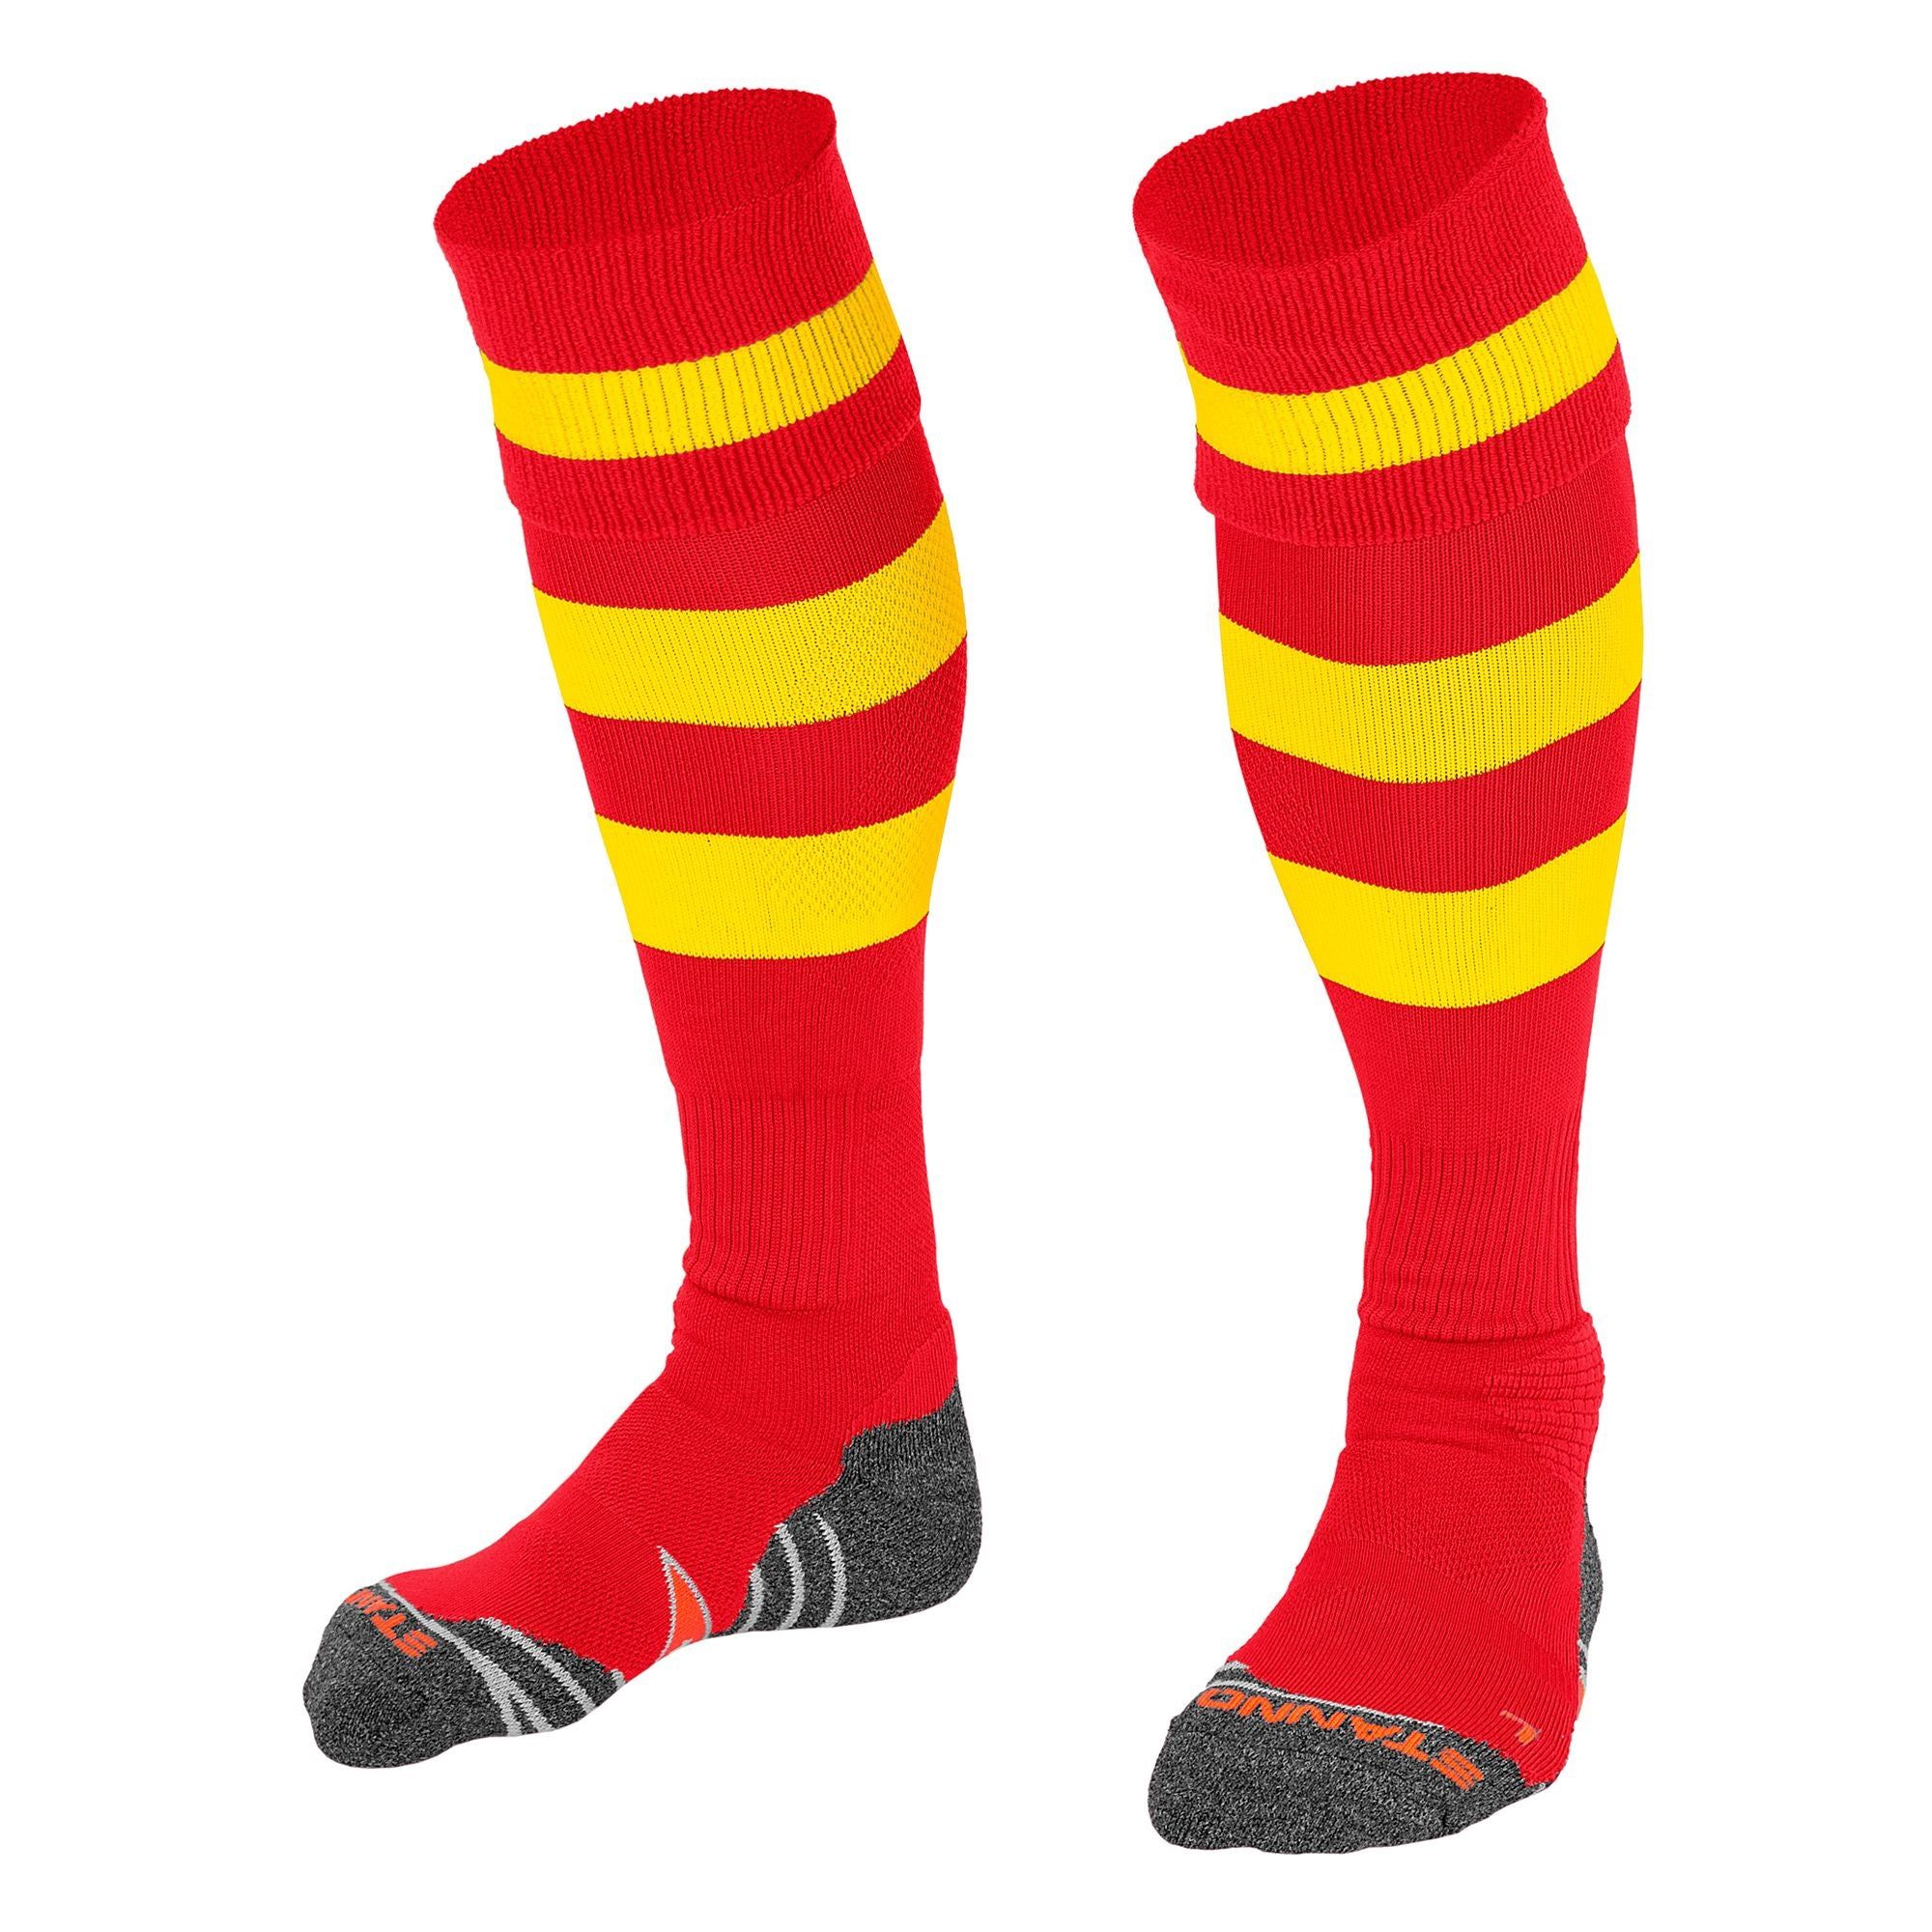 Stanno Original sock in red with 2 thick horizontal yellow stripes through the centre of the sock and one on the turnover. d